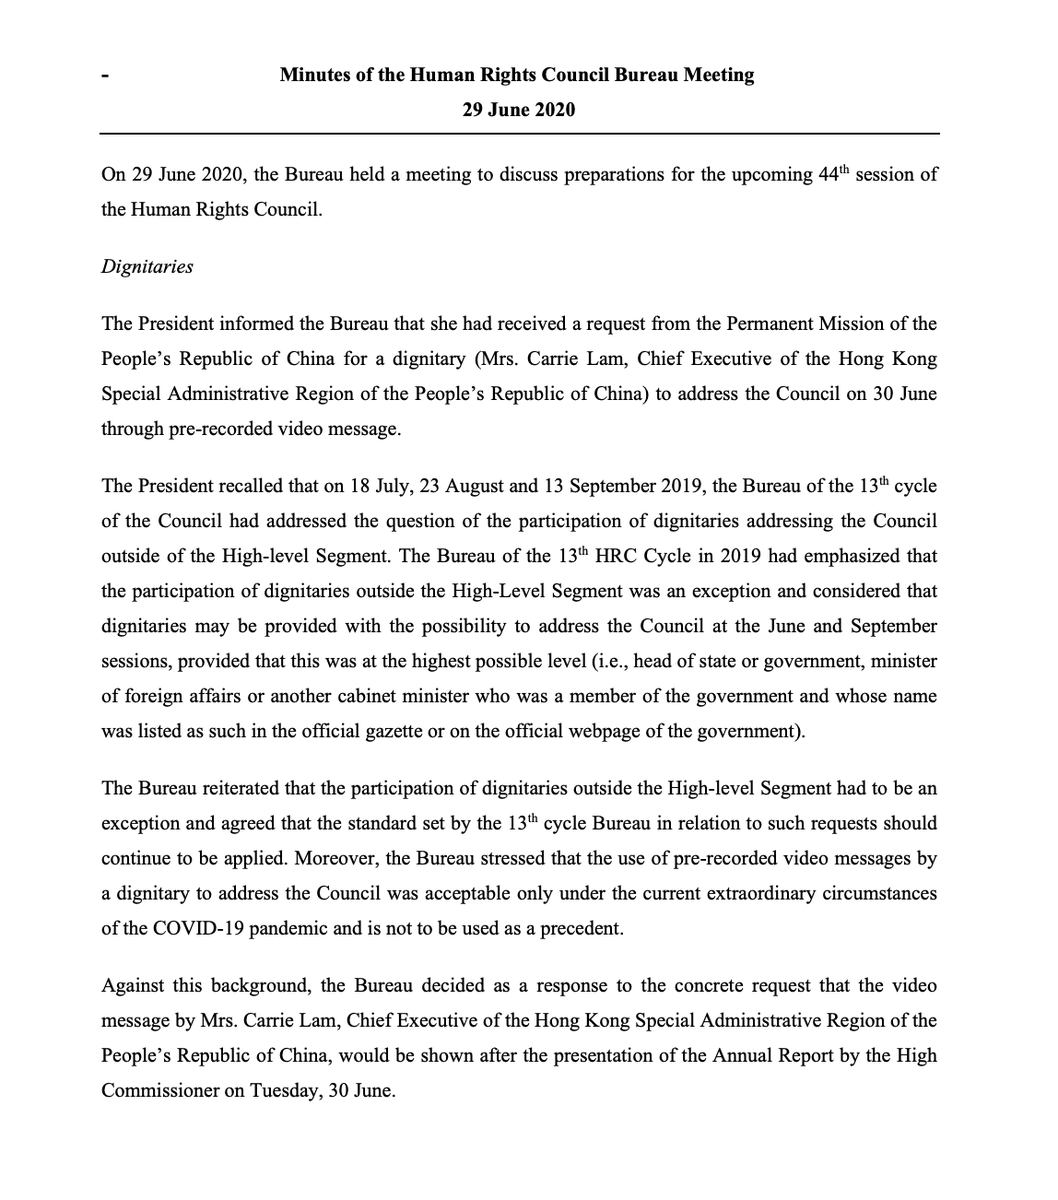 Here are the non-public minutes of the UN Human Rights Council bureau meeting where they OK'd China's request for Beijing's puppet ruler of Hong Kong Carrie Lam to specially address the Council—even though the normal rules don't allow it—on the same day China swallowed Hong Kong. https://t.co/nSqsizImlT